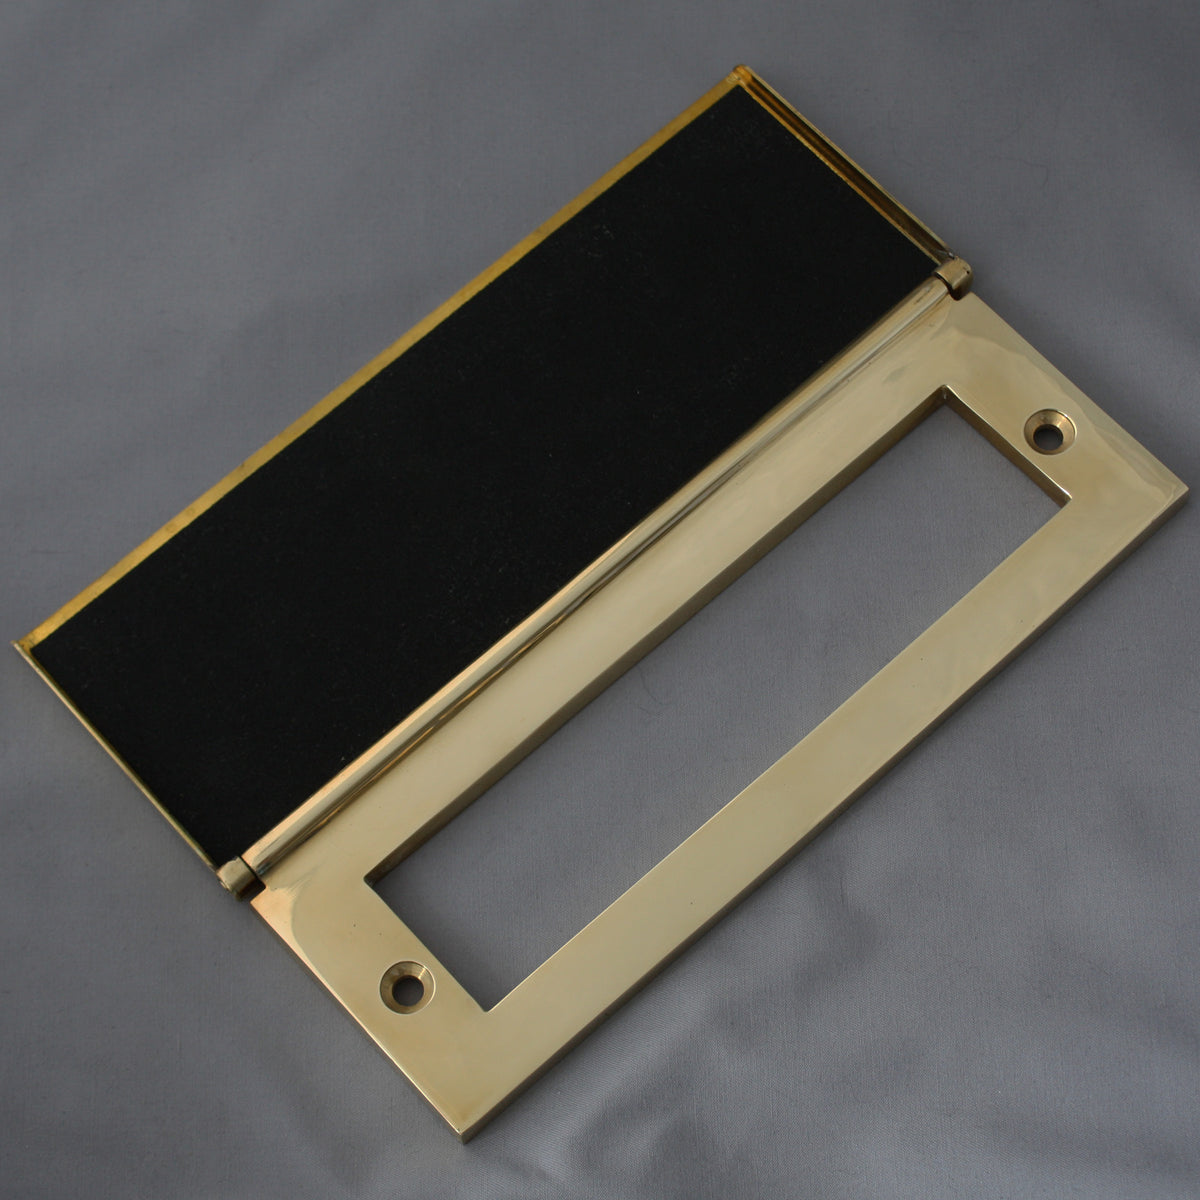 Traditional Solid Brass Letter Plate Letterbox With Clapper Pull Knocker